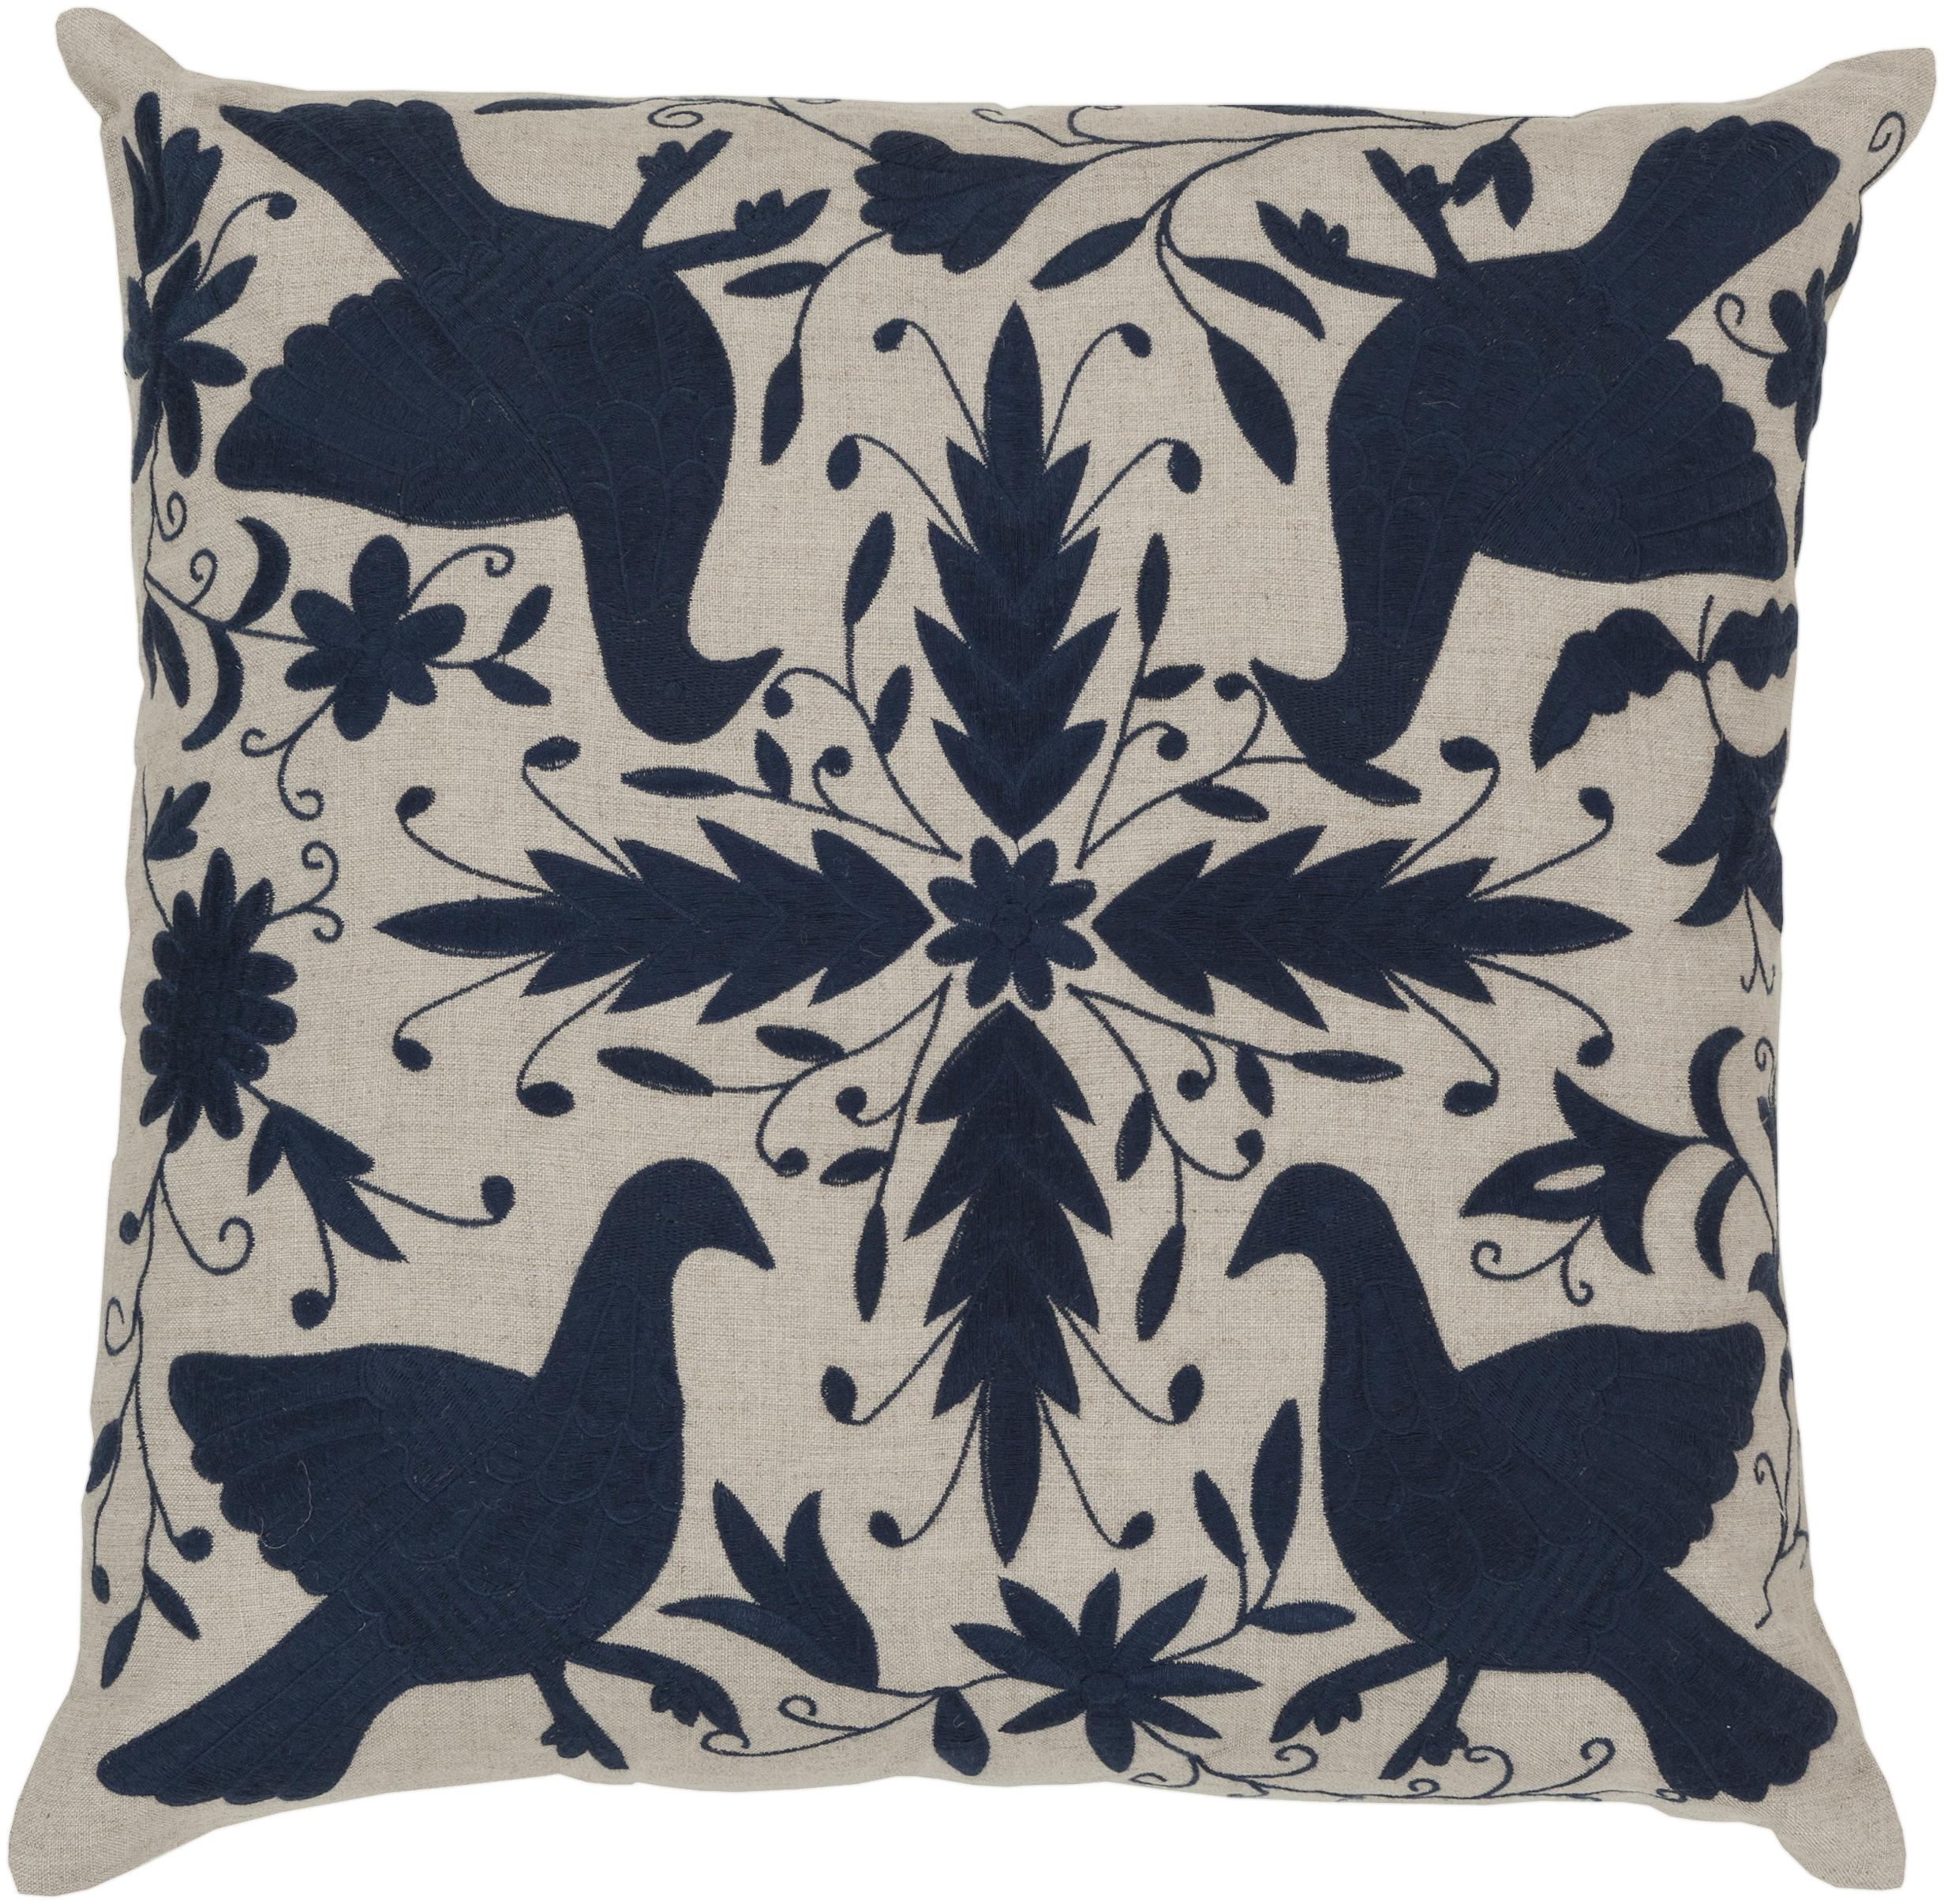 "Surya Rugs Pillows 22"" x 22"" Pillow - Item Number: LD020-2222P"